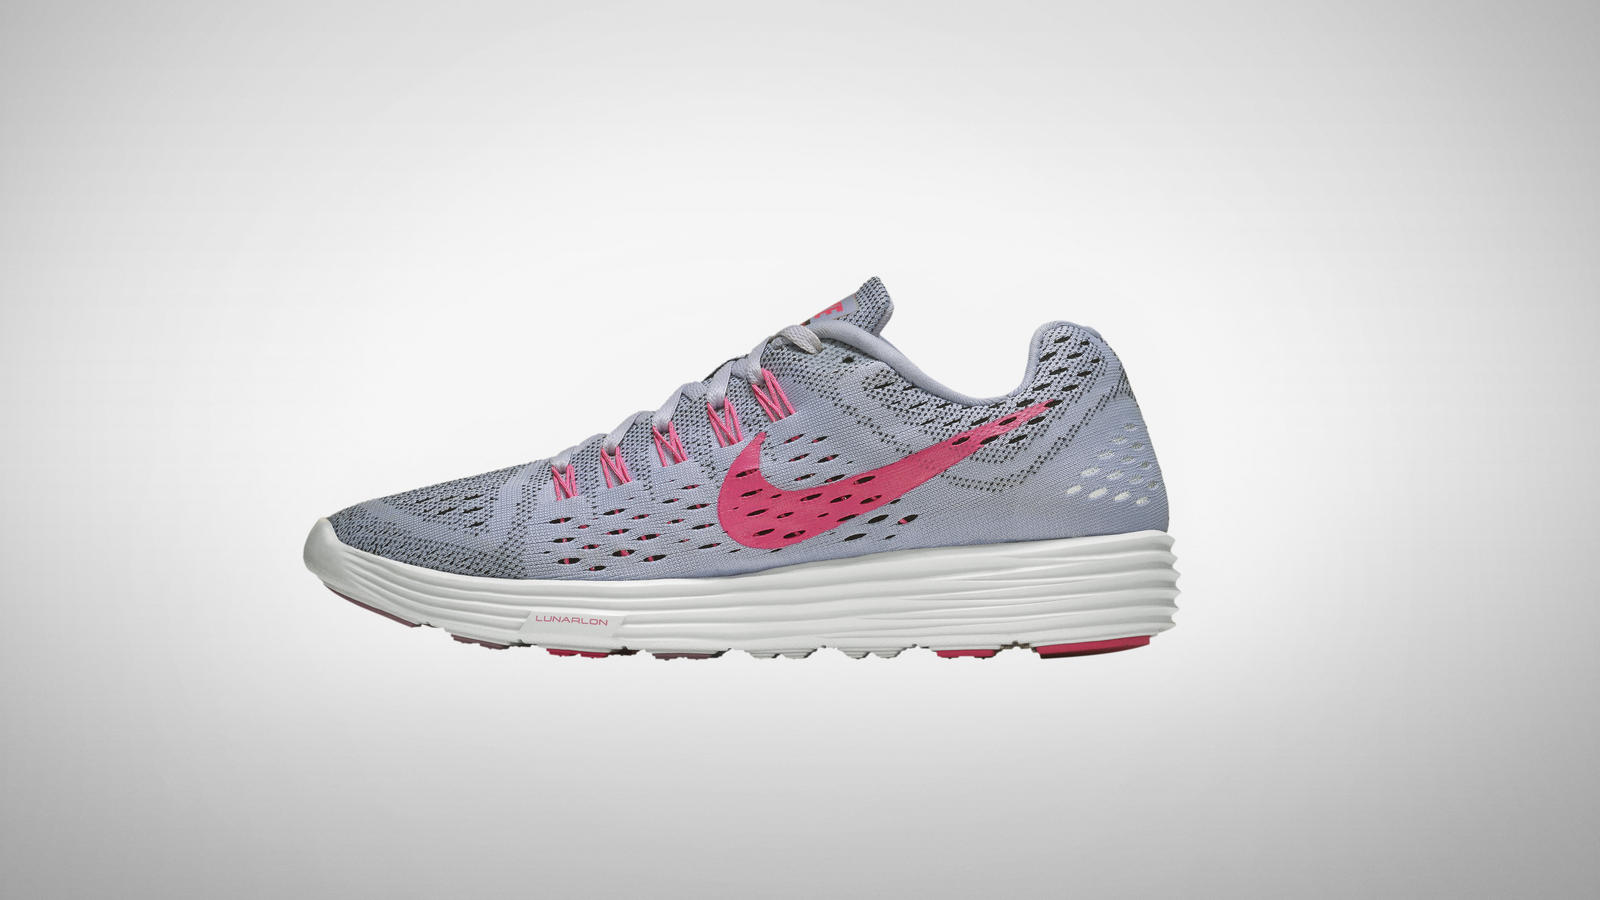 online retailer b465f e7eac INTRODUCING THE NIKE LUNARTEMPO – DESIGNED TO MAKE EVERY DAY ...